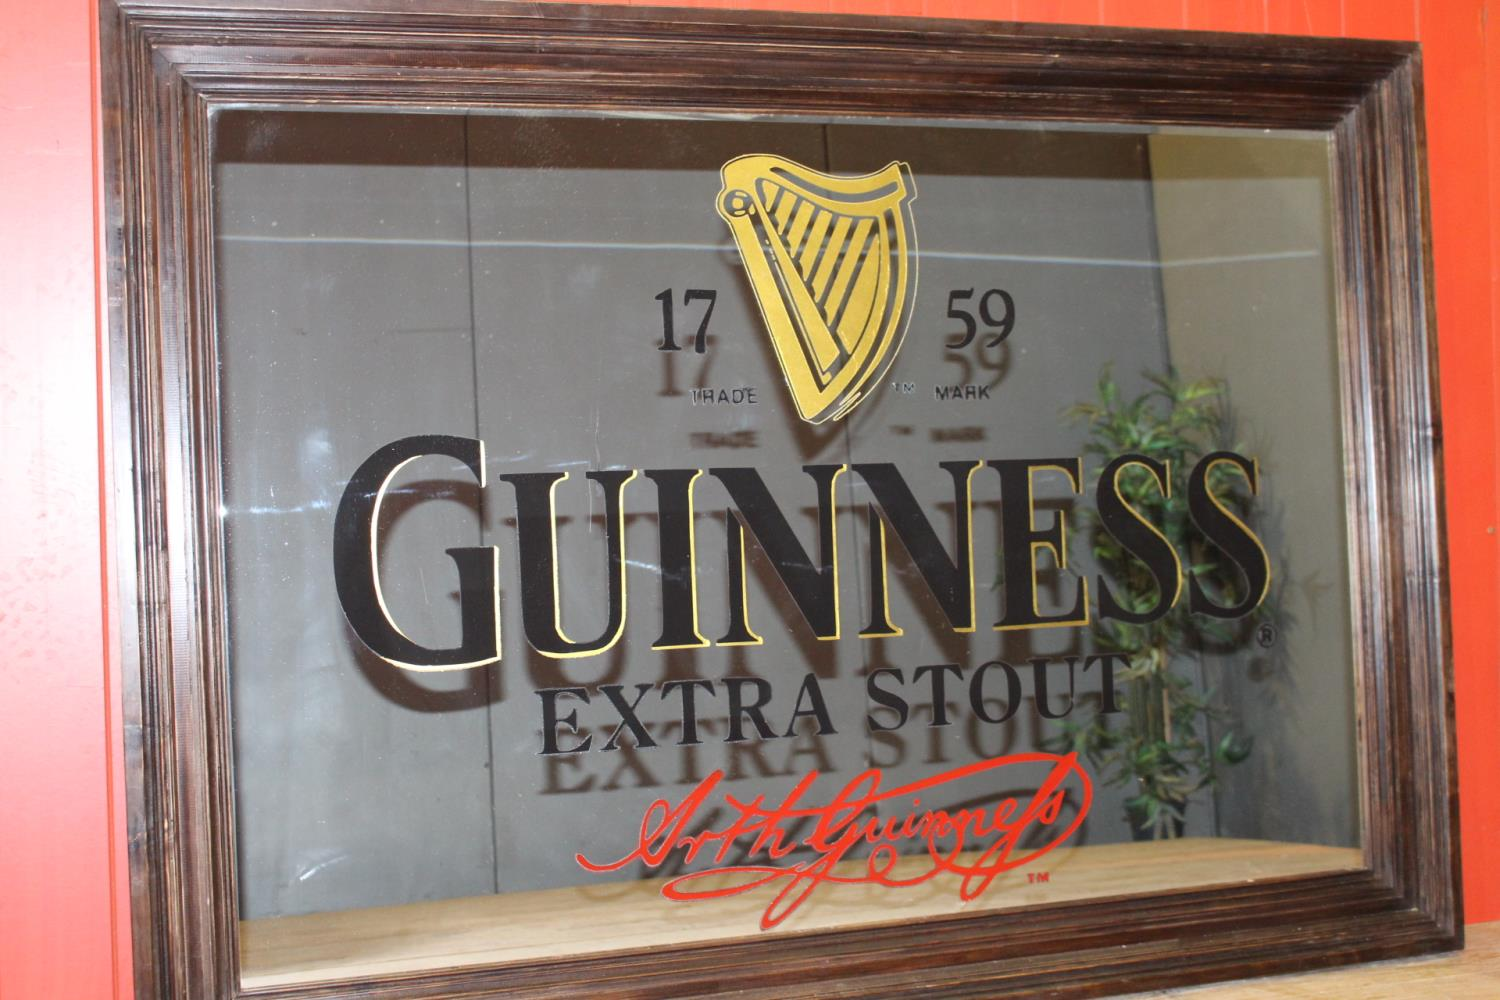 Guinness Extra Stout advertising mirror - Image 2 of 3